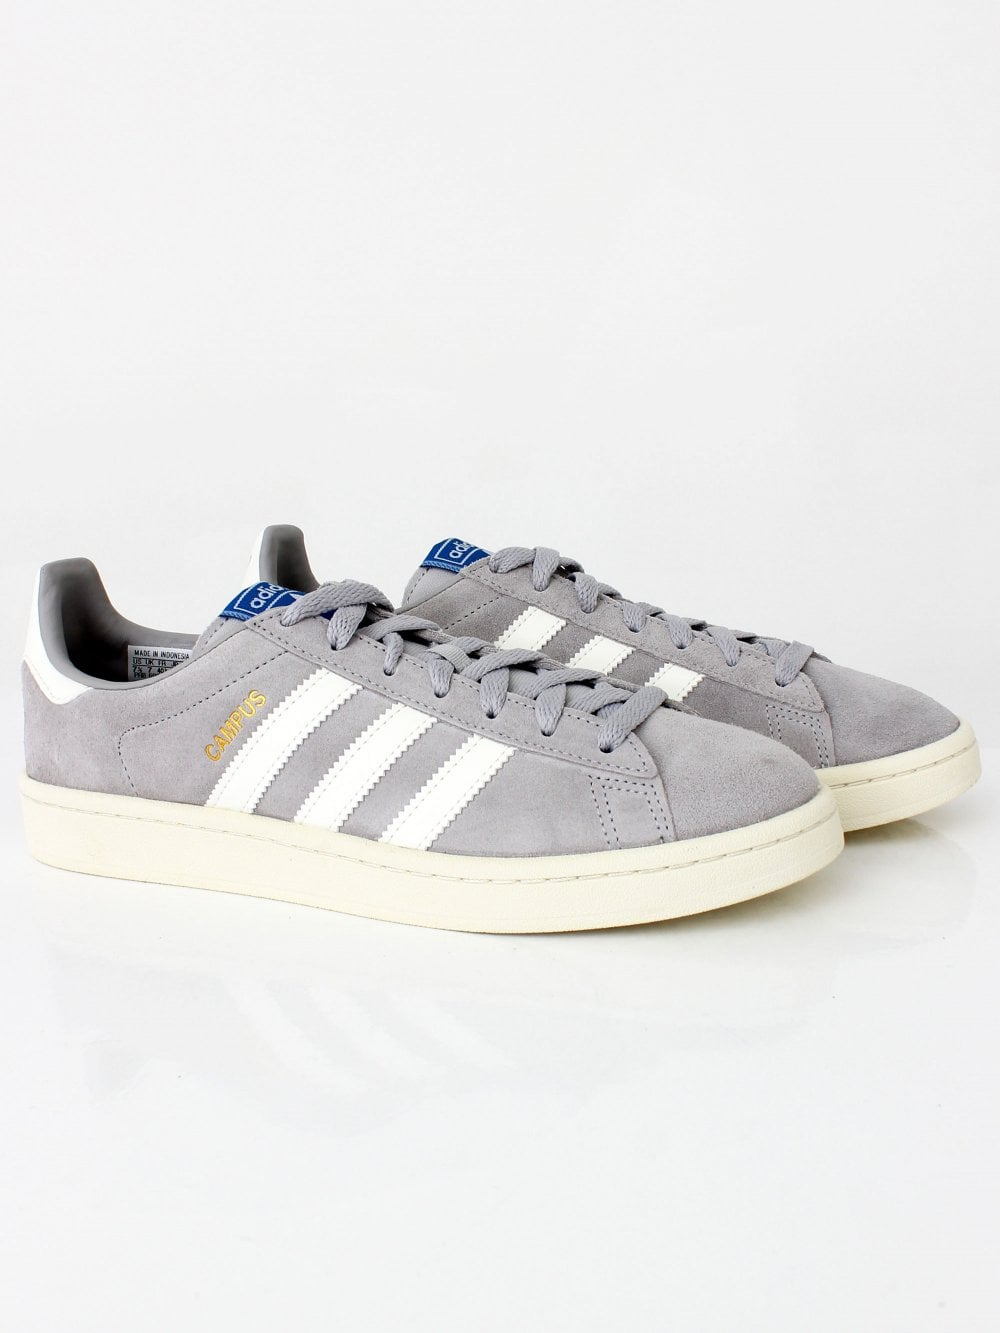 adidas Originals Adidas Campus - Grey